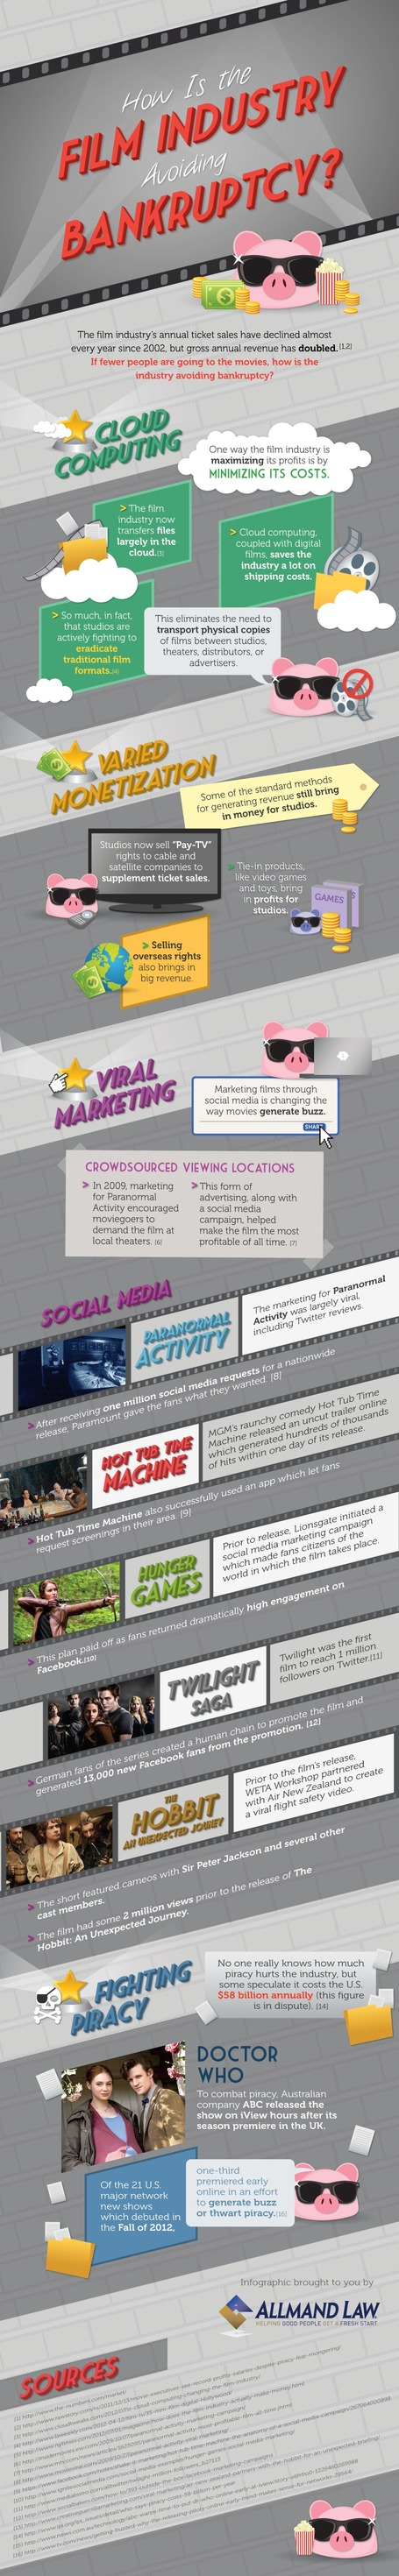 How Social Media and Viral Marketing are Saving the Film Industry [INFOGRAPHIC] | Young Adult and Children's Stories | Scoop.it